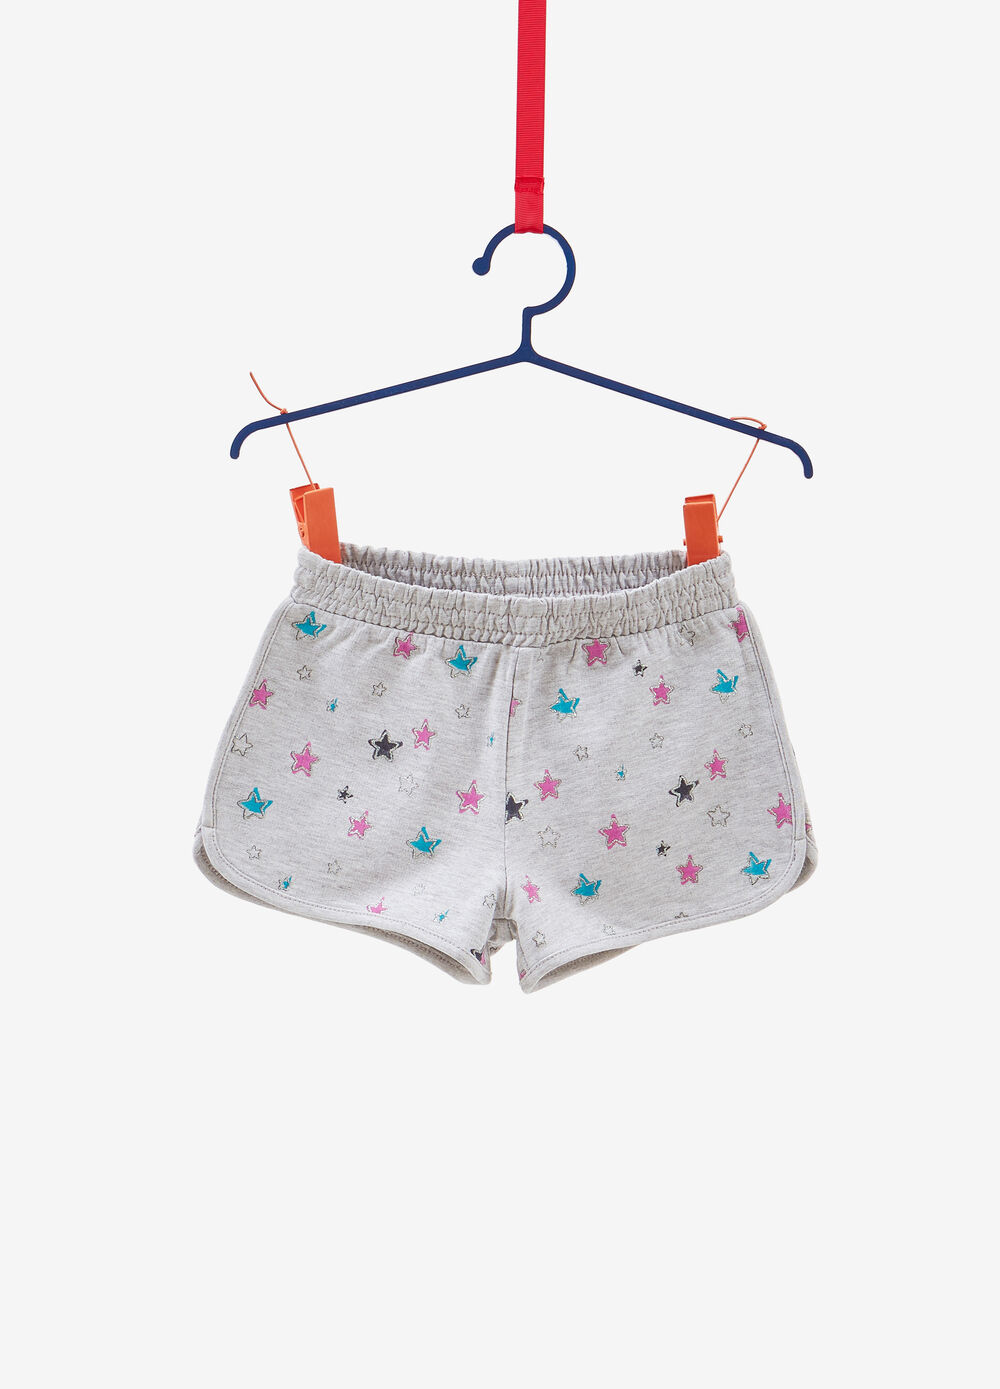 Viscose and cotton shorts with glitter stars